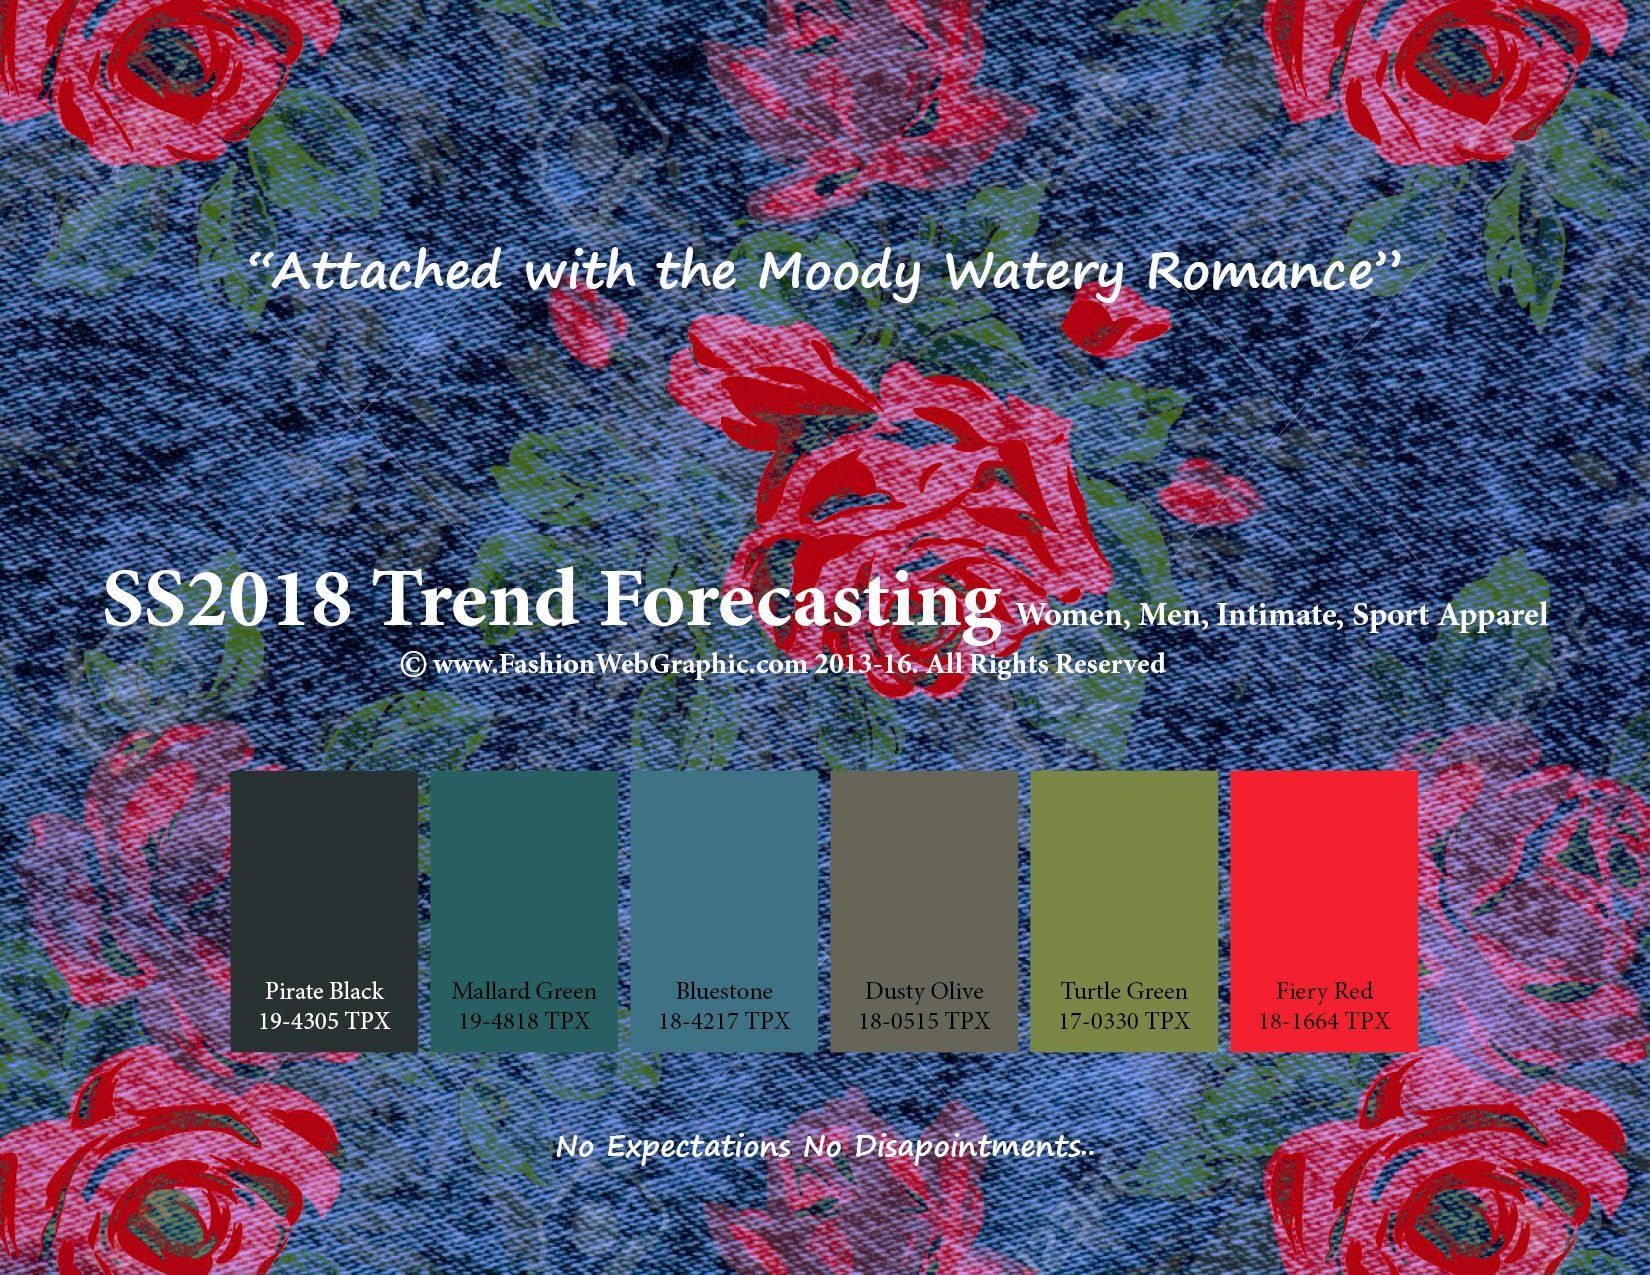 Spring Summer 2018 Trend Forecasting Is A TREND/COLOR